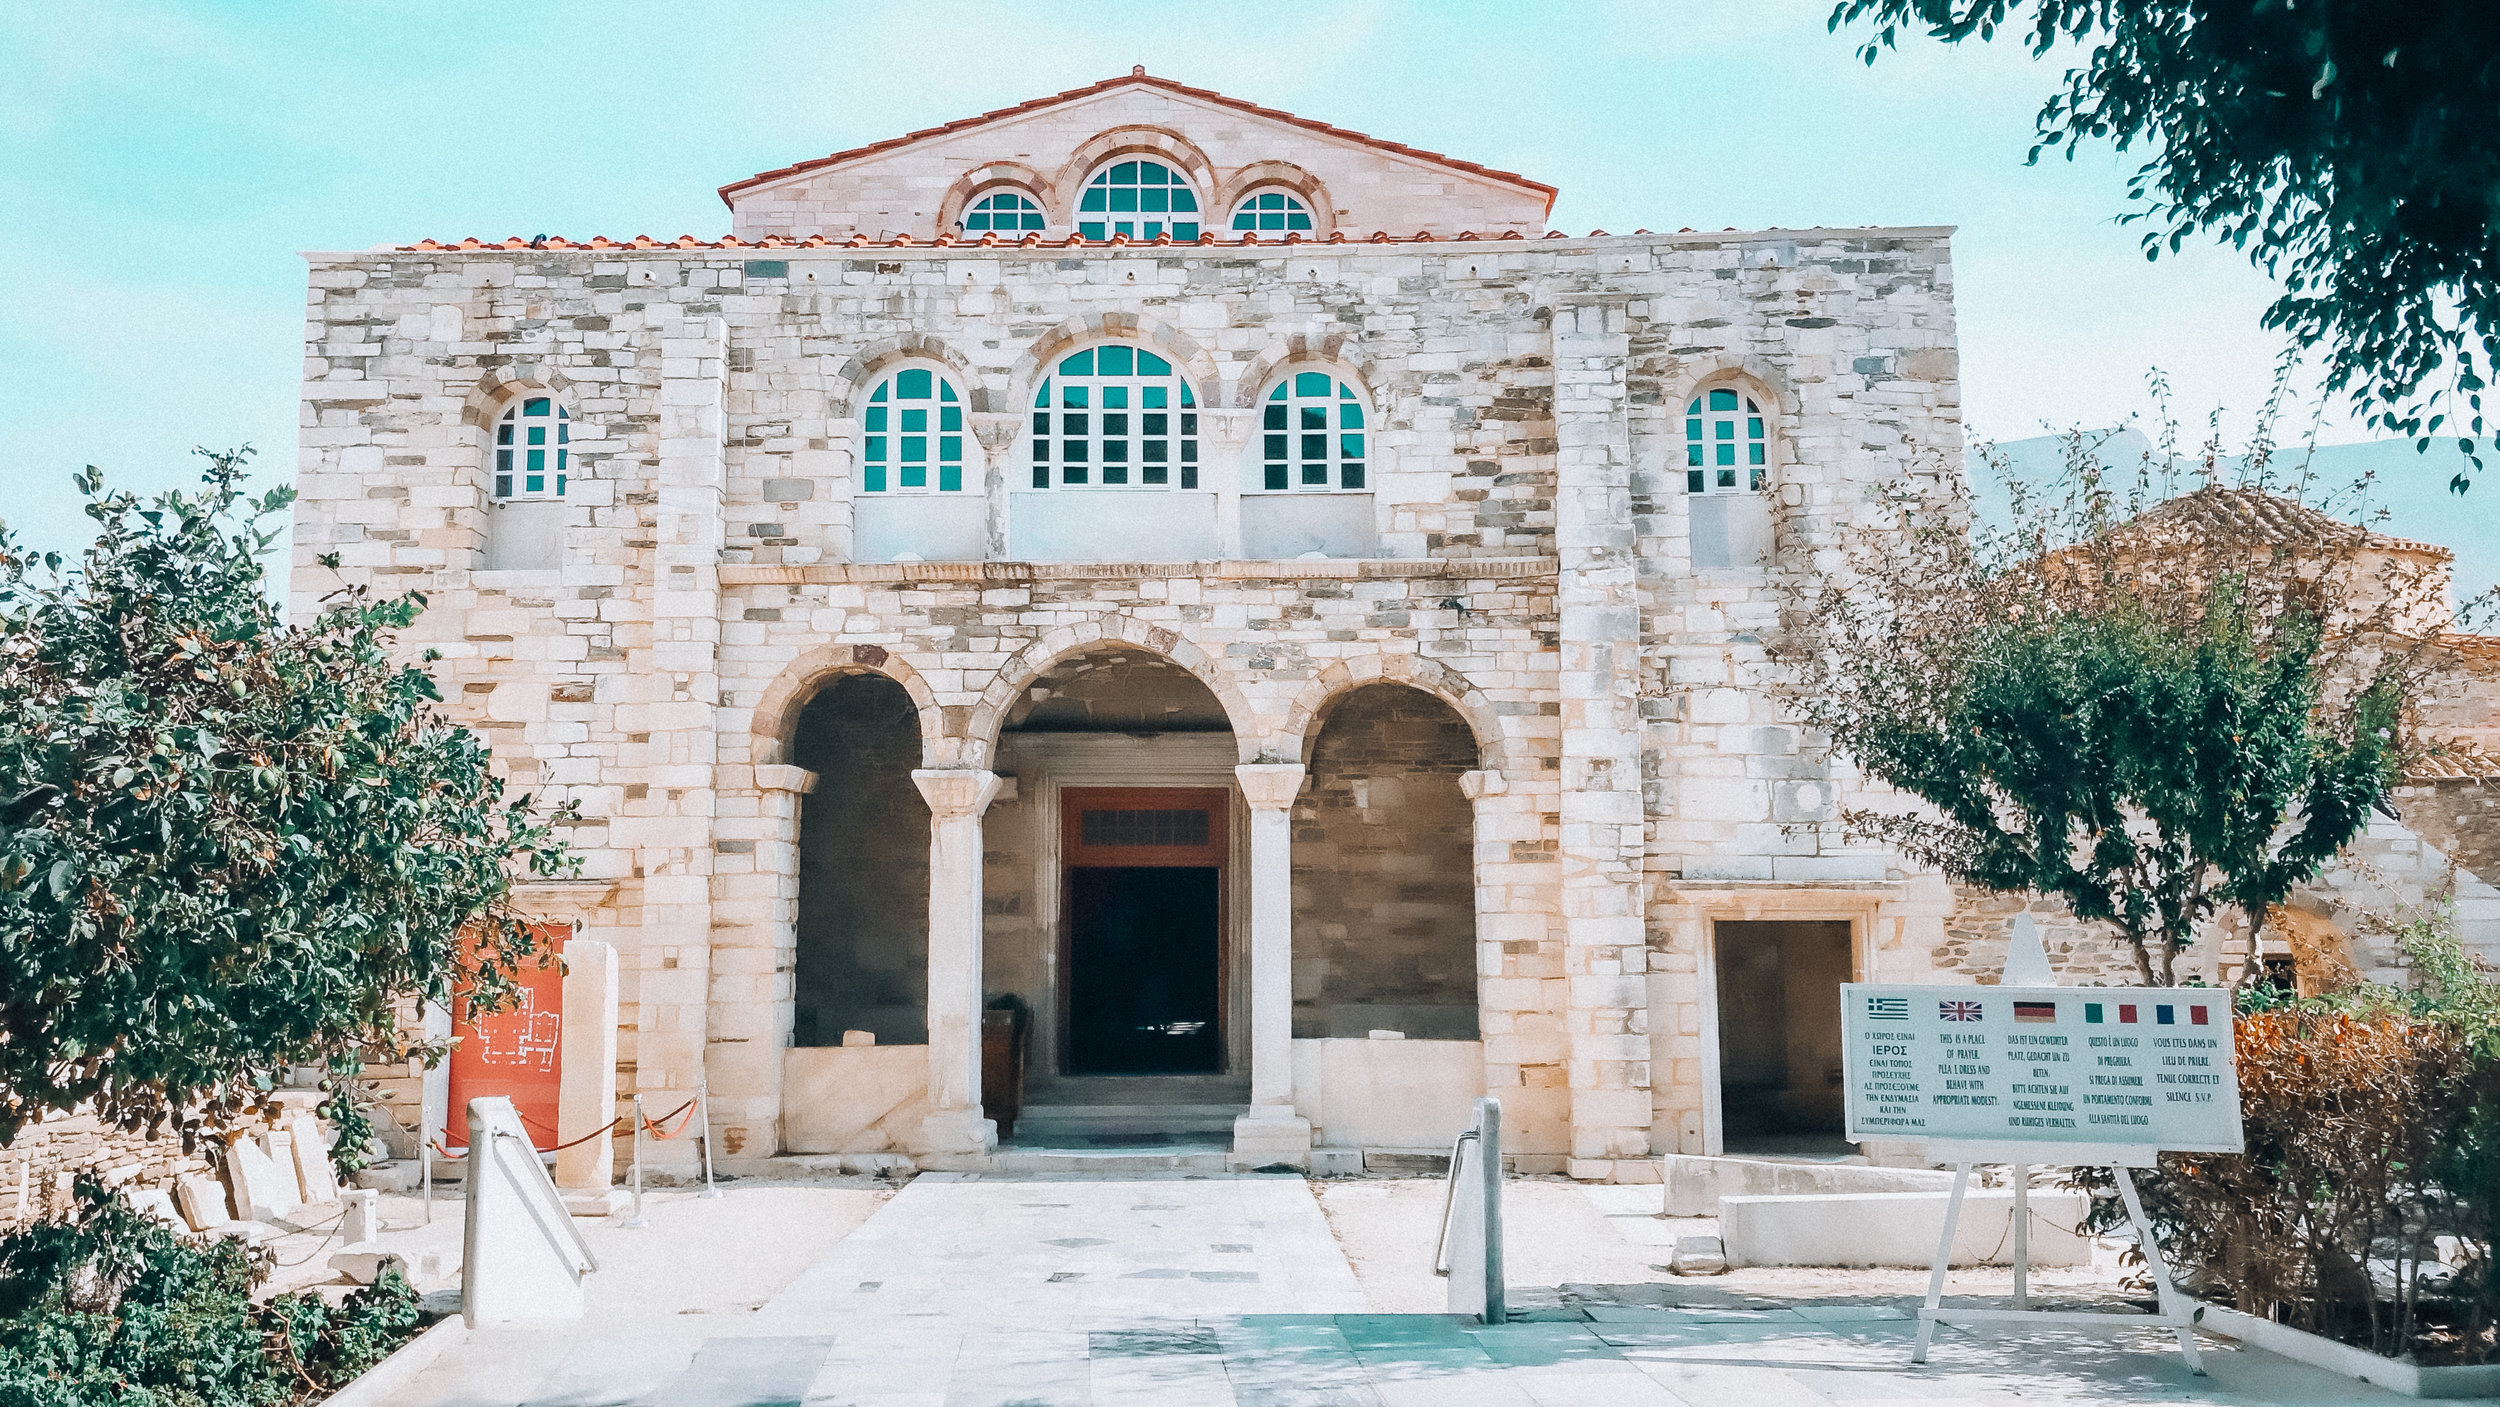 2 miles from the sea on a hill in Parrikia lies Ekatontapiliani, The Church of 100 Doors (Paros, Greece).Originally it was a 4th century temple to Aphrodite, the Greek Goddess of love and there are still original columns from.